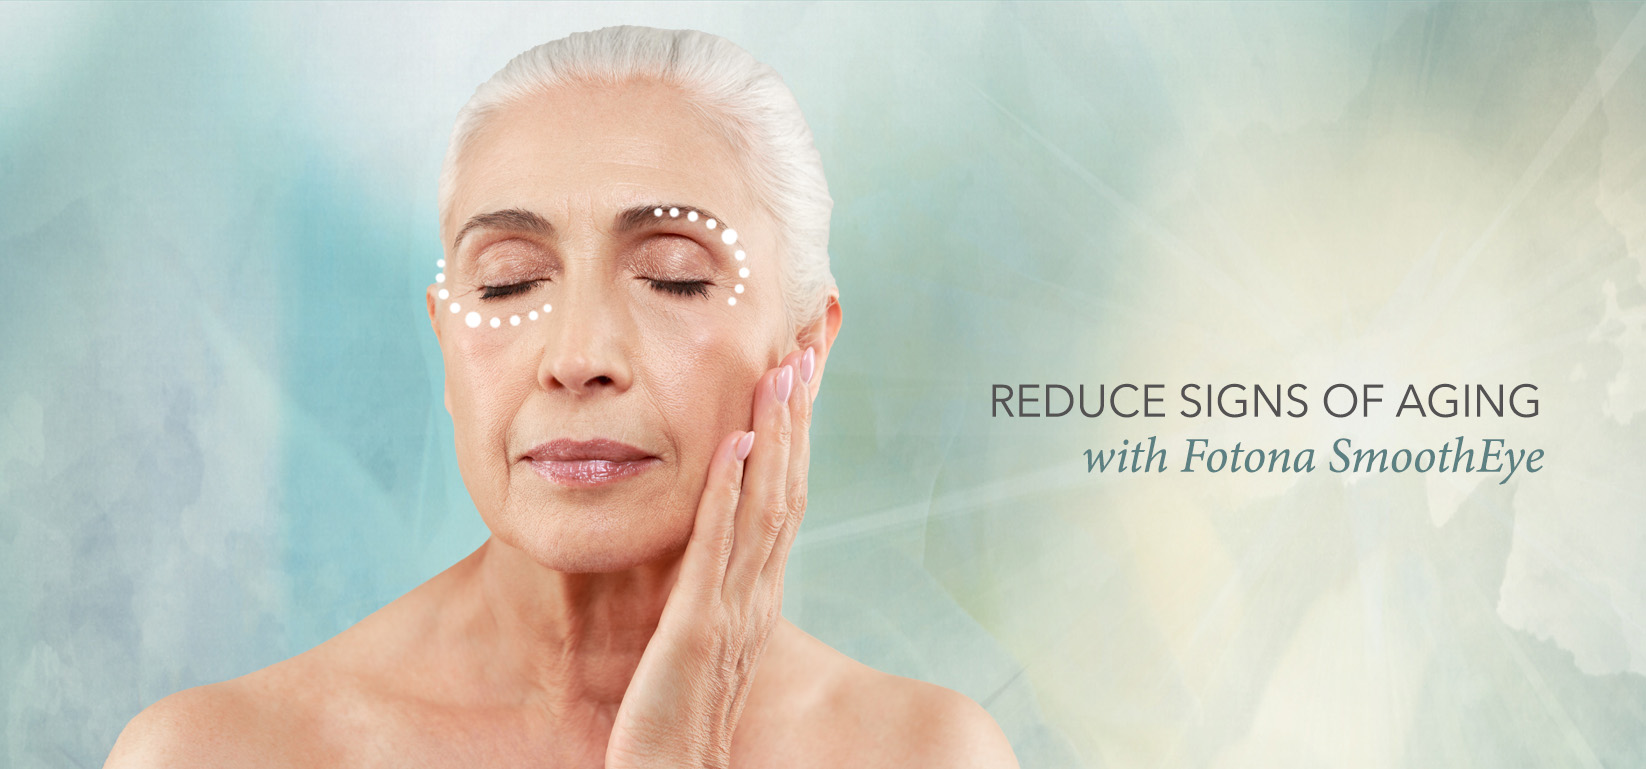 Reduce signs of aging with Fotona SmoothEye